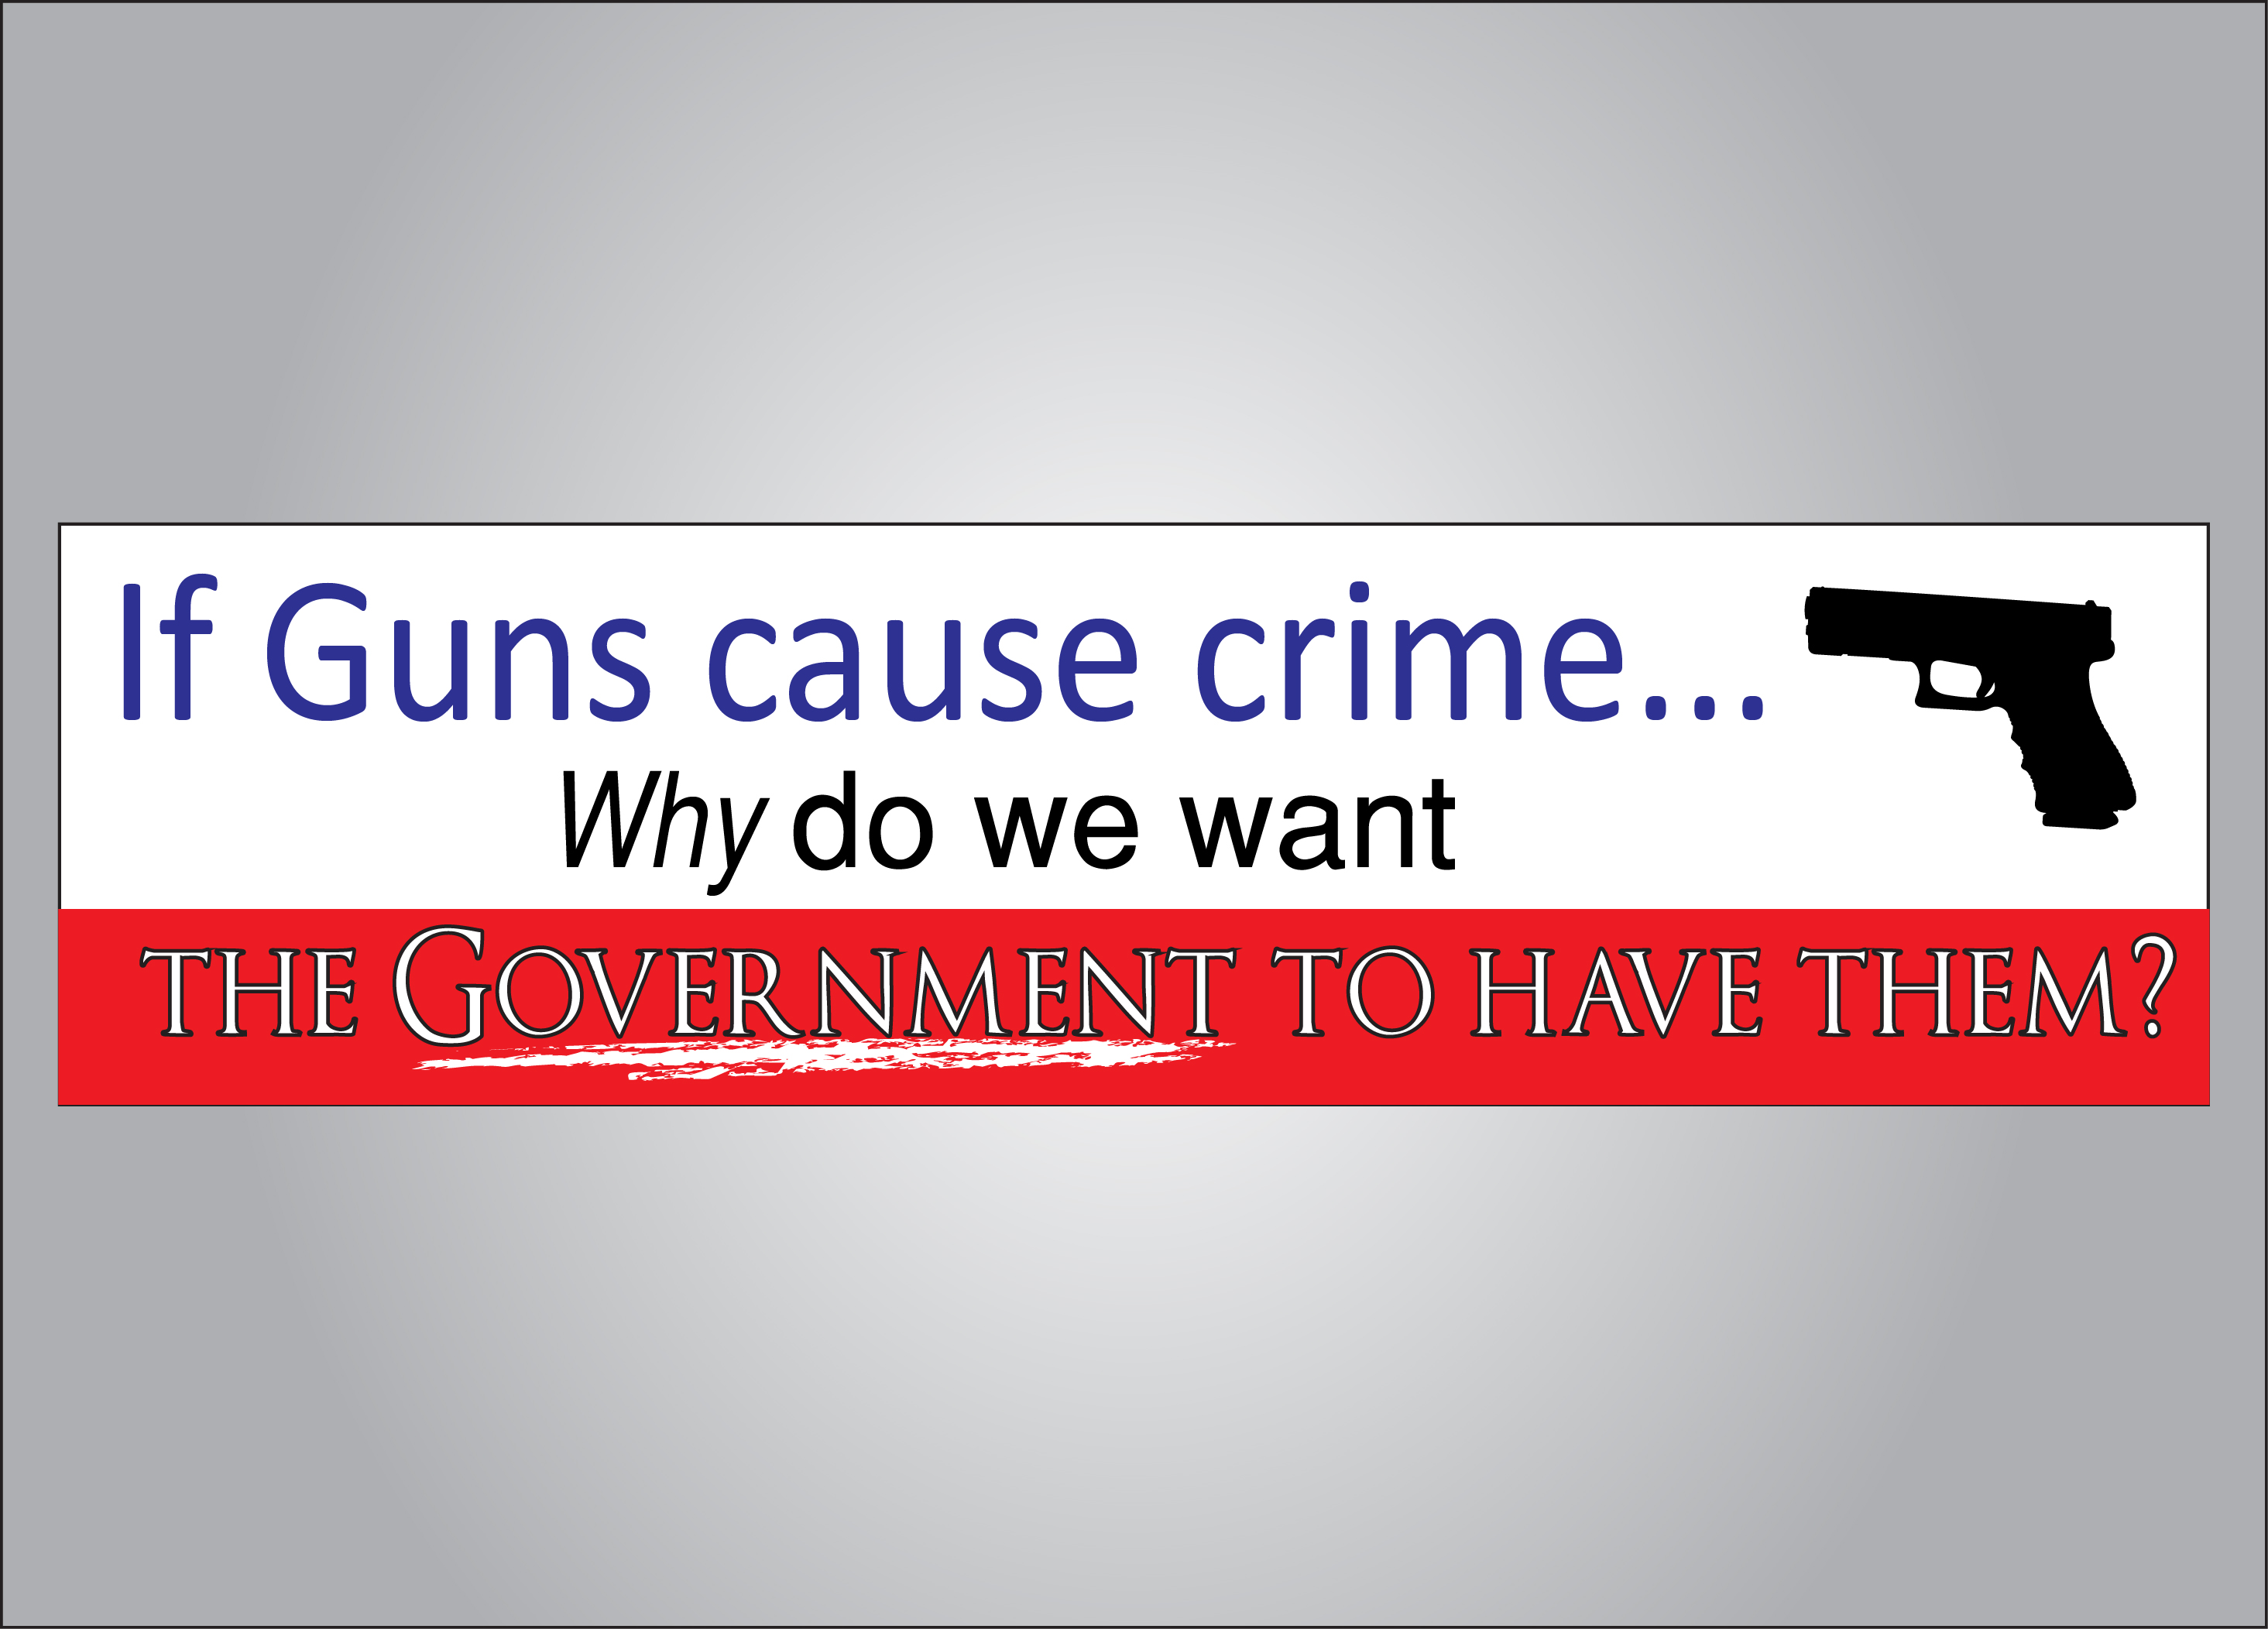 Do we want guns to cause crime in the government?